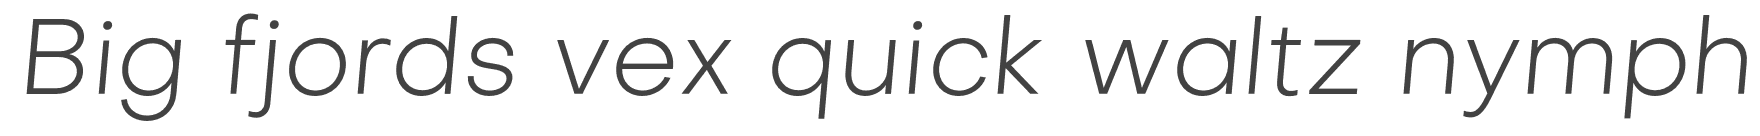 Font preview image